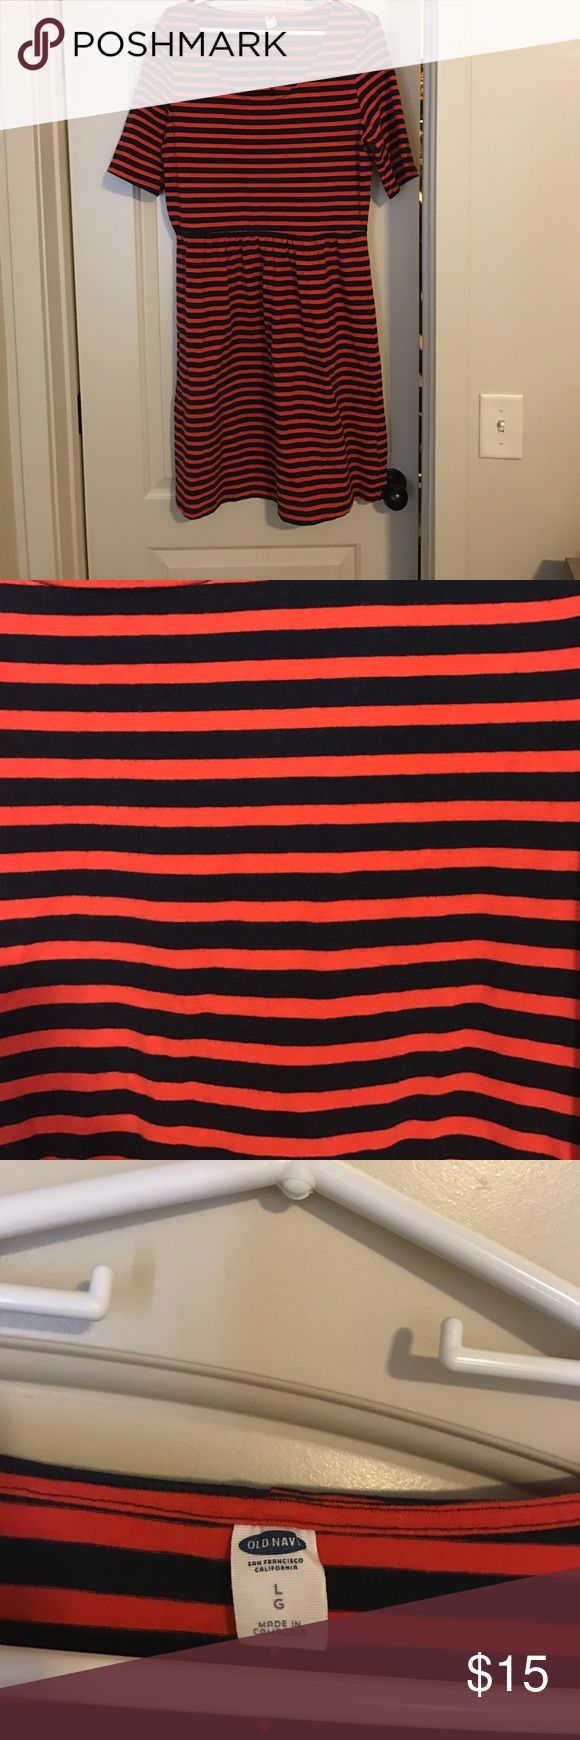 Red/orange and navy striped dress. Good condition. Red/orange and navy striped dress from Old Navy. Good condition. Only worn a handful of times. Old Navy Dresses Midi